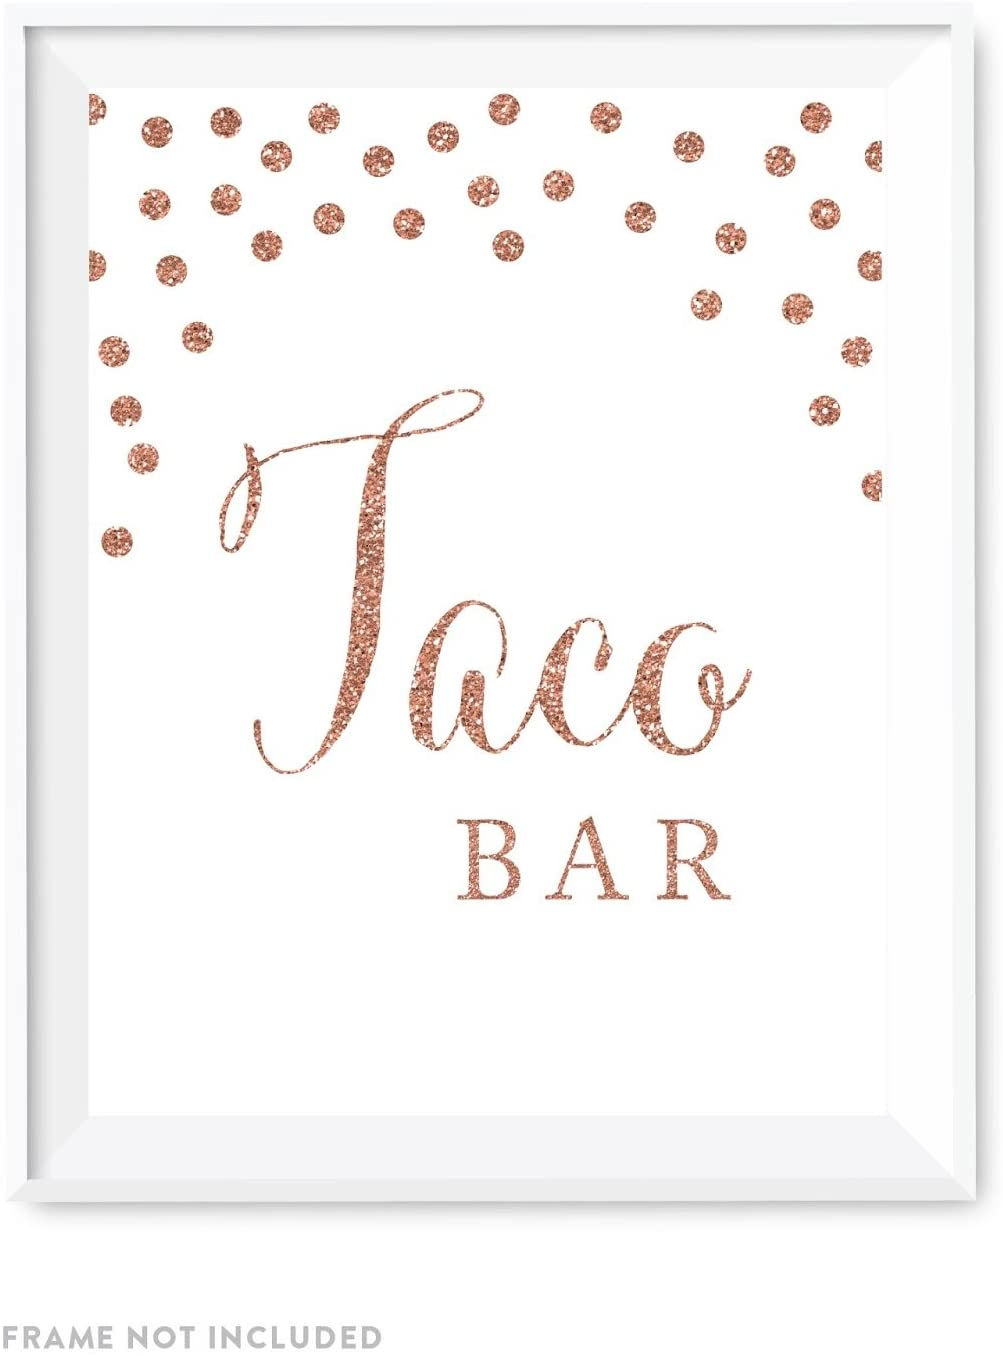 Andaz Press Wedding Party Signs, Rose Gold Faux Glitter, 8.5x11-inch, Taco Bar, 1-Pack, Champagne Copper Colored Party Supplies Decorations